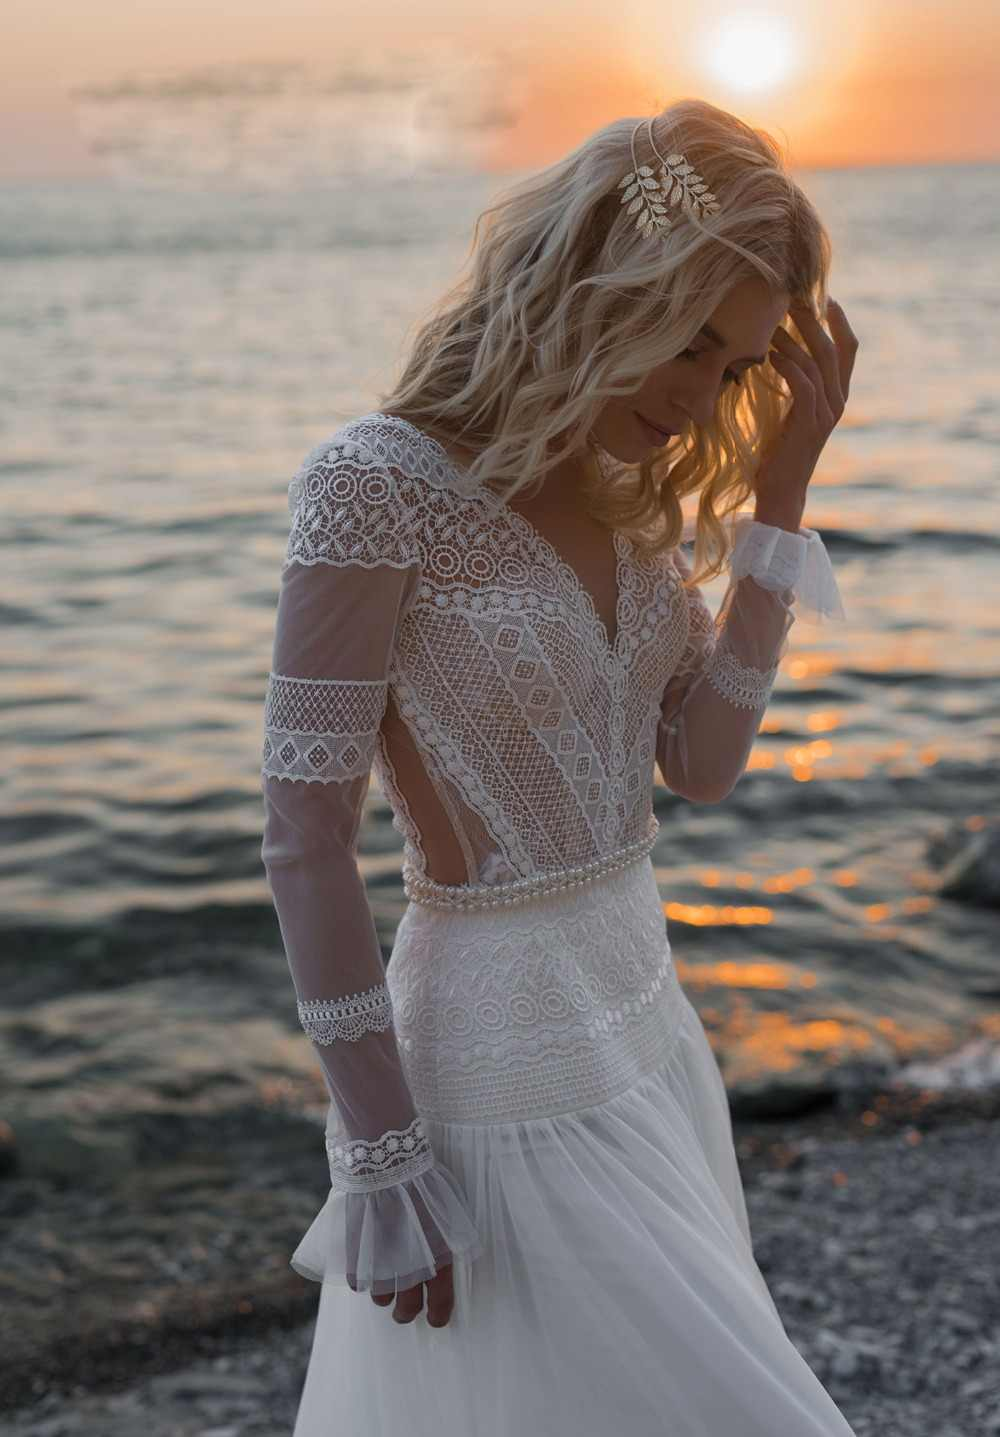 2019 Sexy Boho Lace Beach Wedding Dress Backless Long Sleeve Vestido De Noiva See Through Tulle Appliques Bridal Gowns